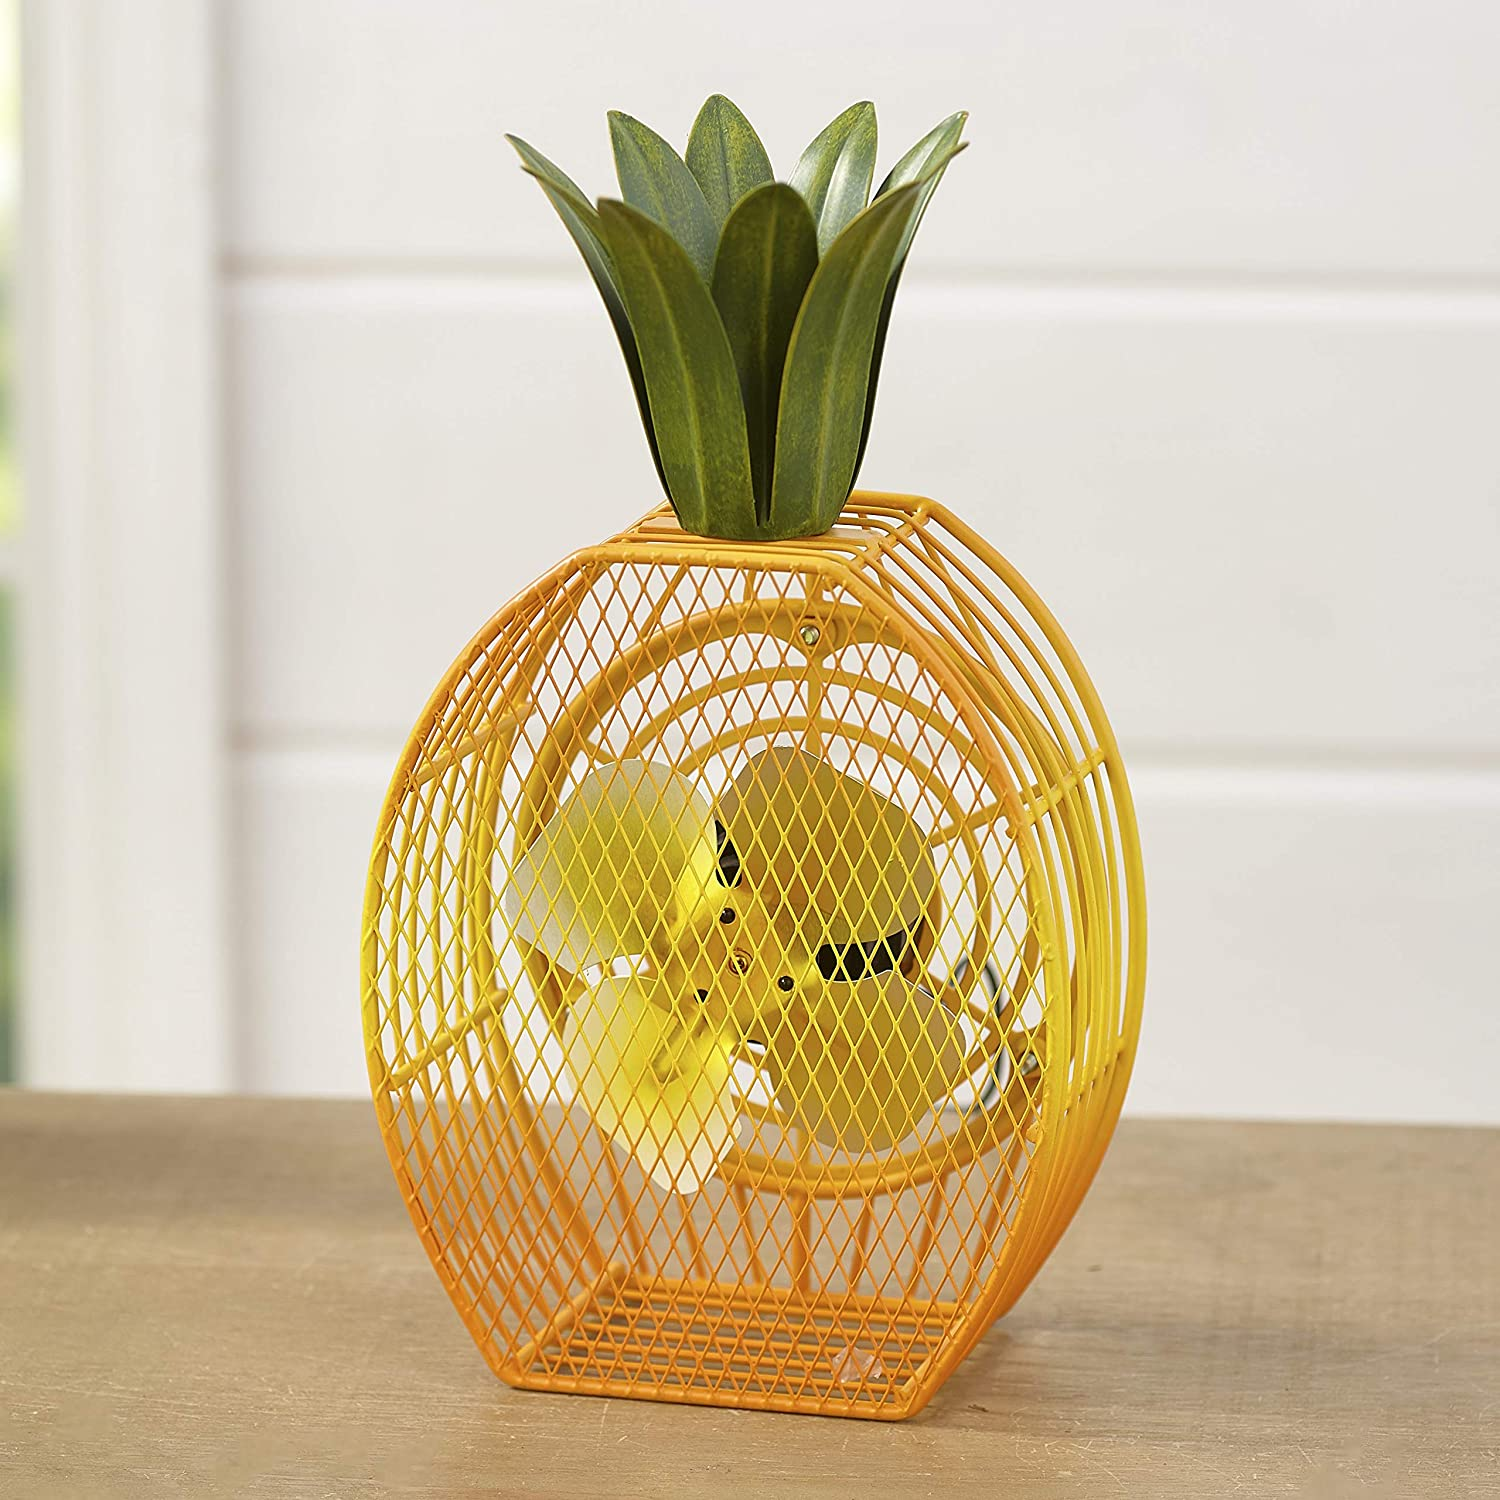 Pineapple USB Fan for Desktops - Home and Office Tropical Decor for Work